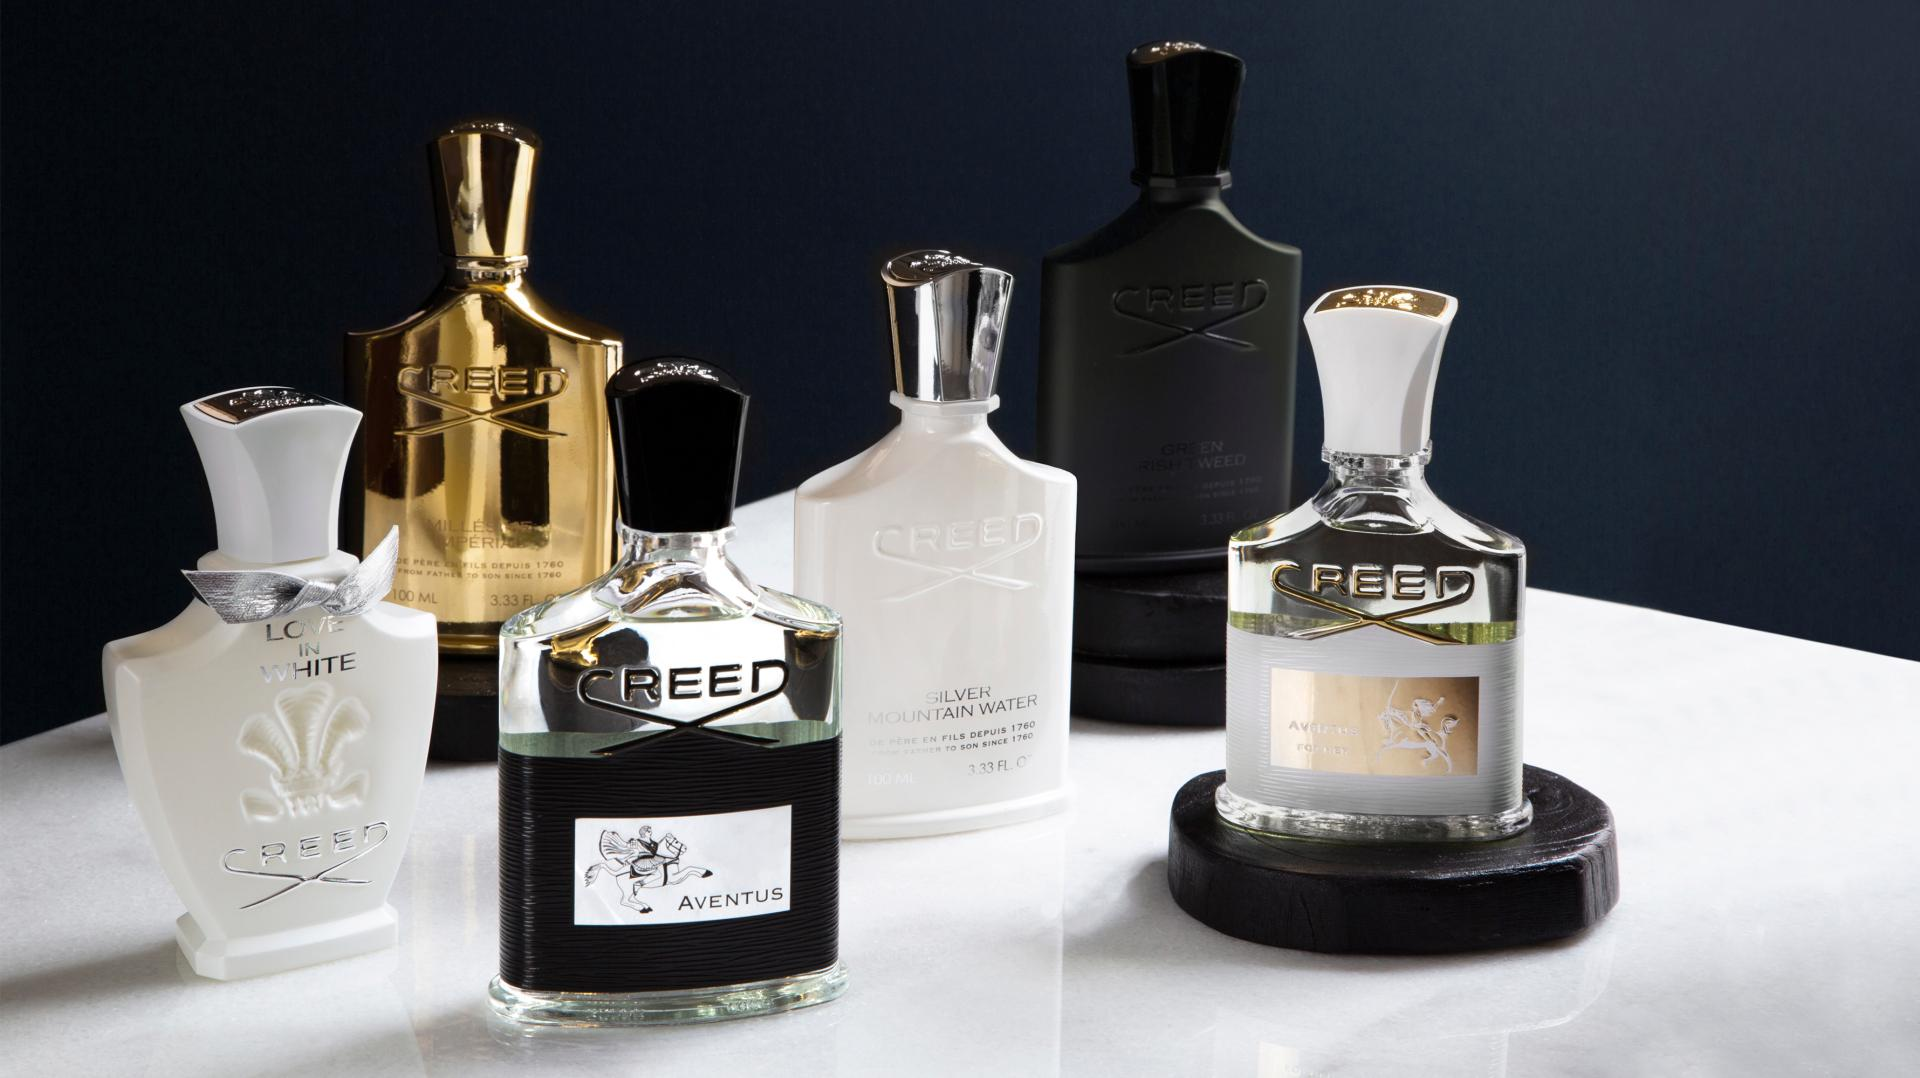 Best Sellers Creed Colognes And Perfumes The Official Creed Site